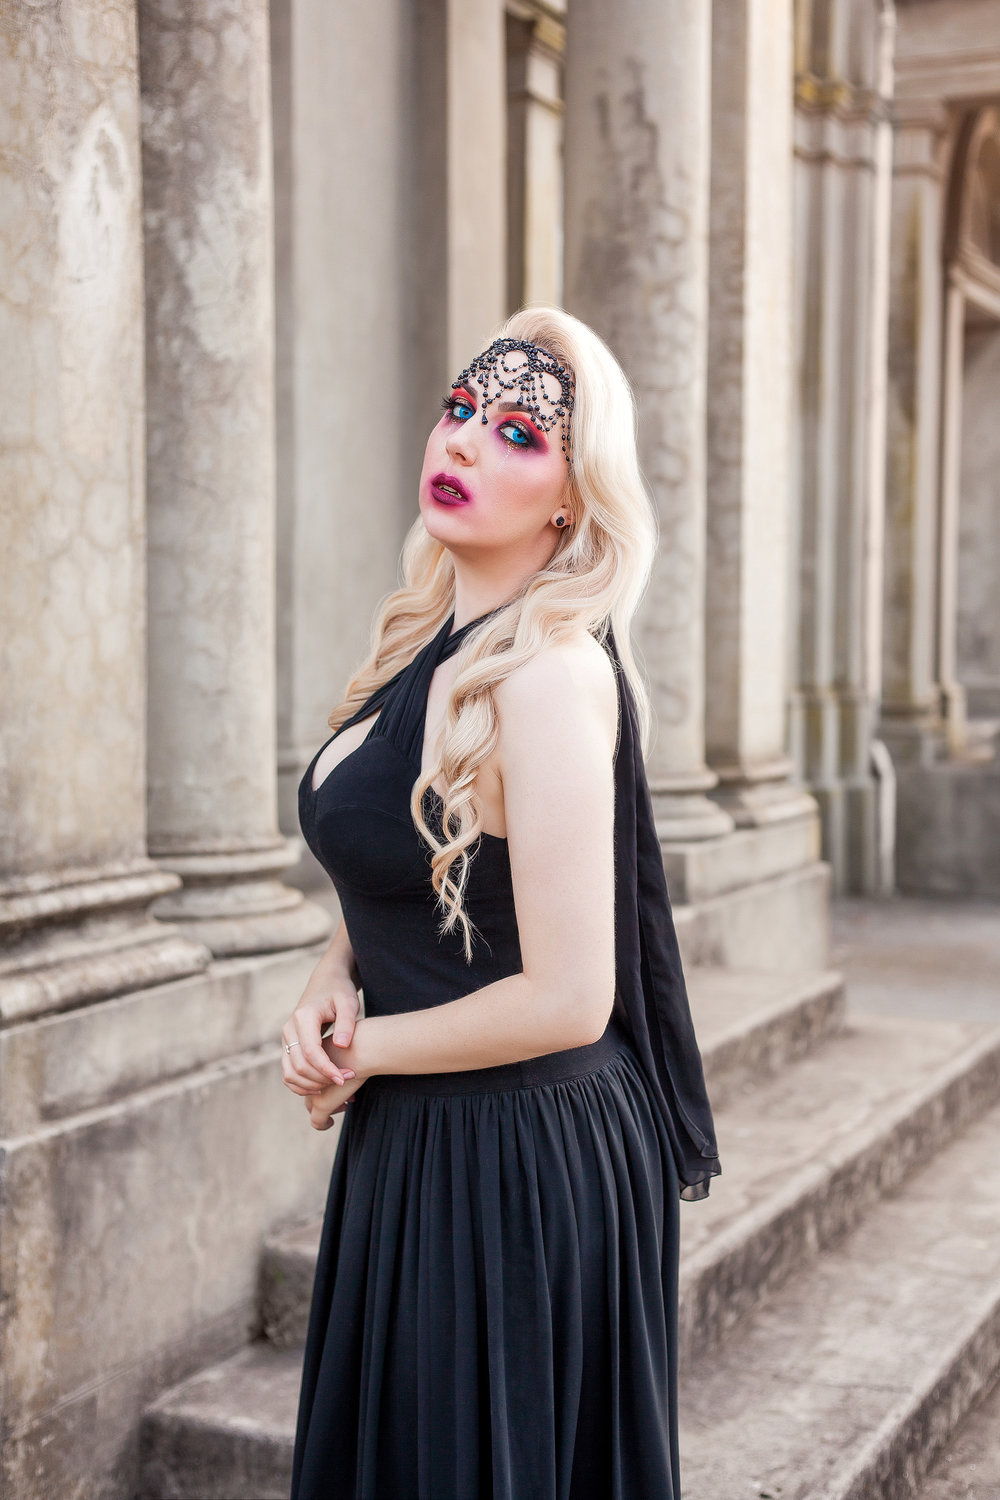 Dress & Accessories: Thrifted and Vintage. Fangs and Contact Lenses from BodyFX